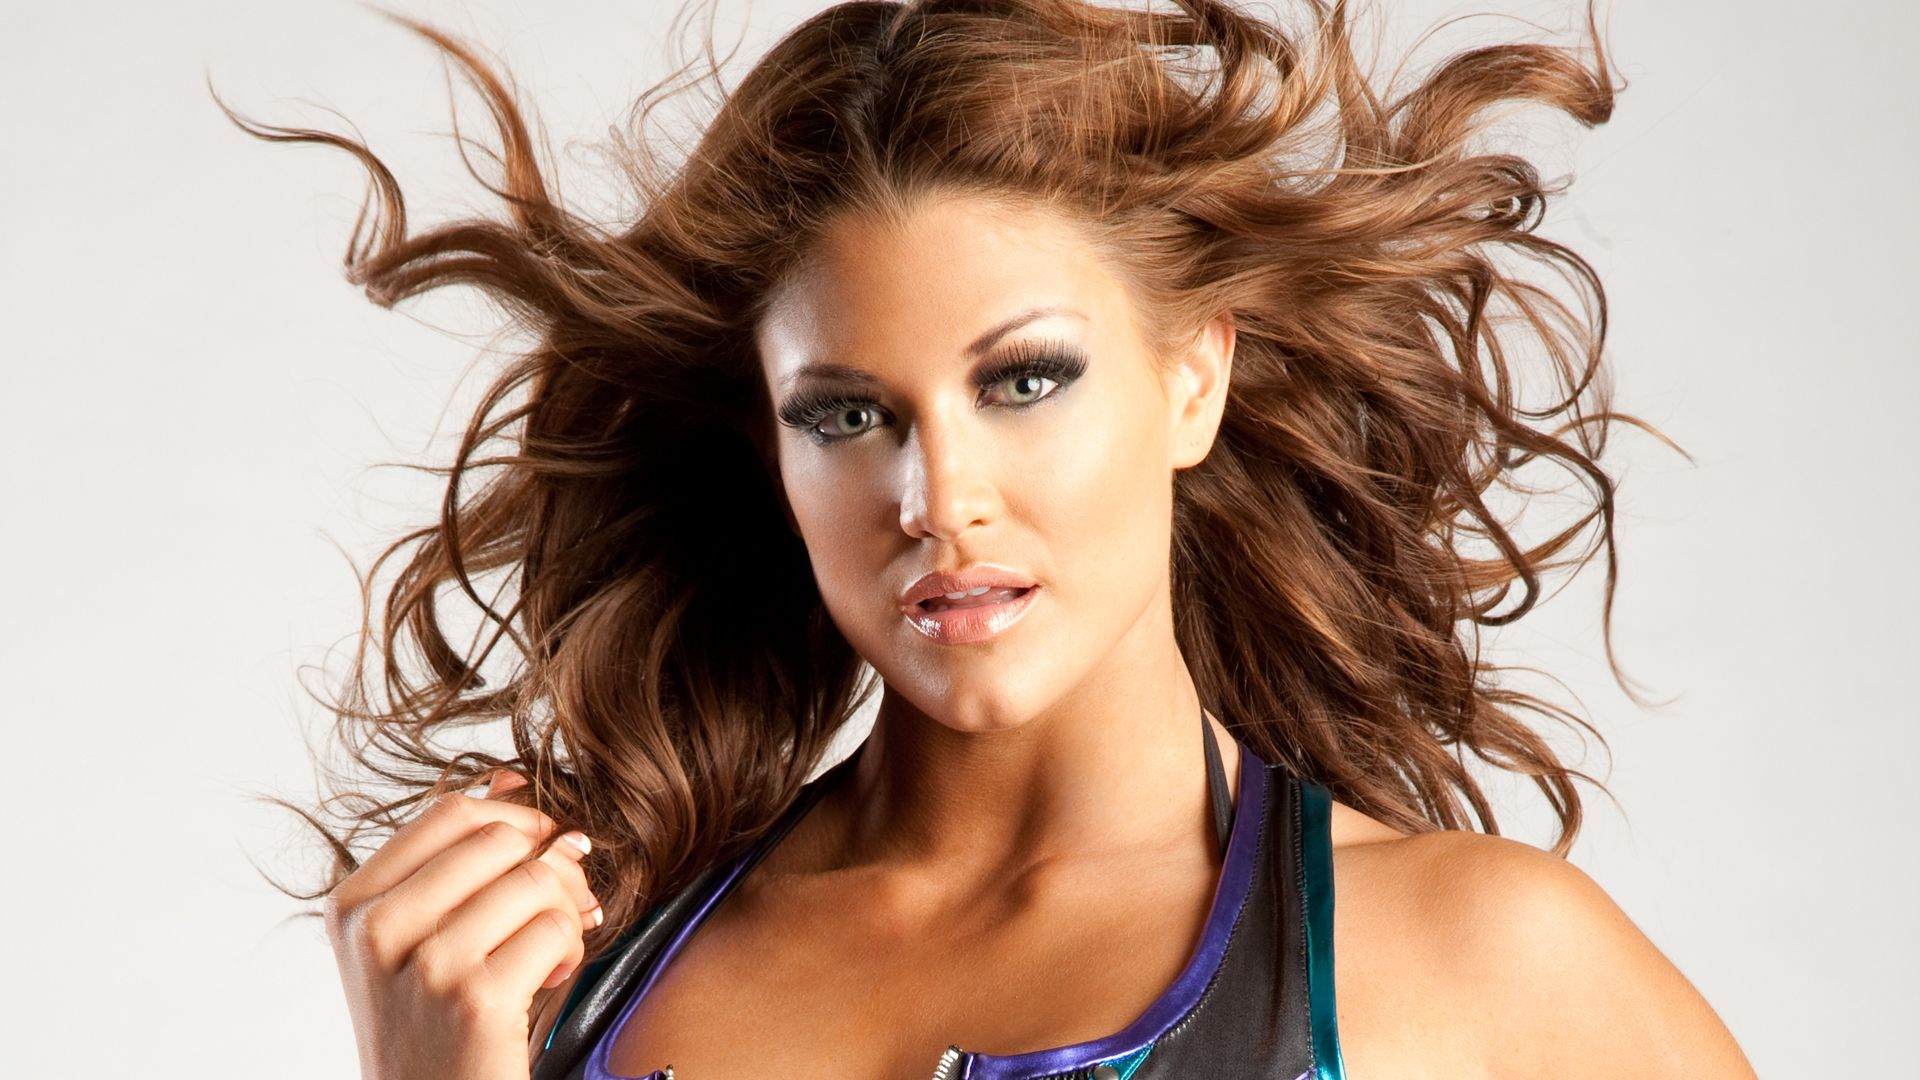 Eve Toress Wwe Diva